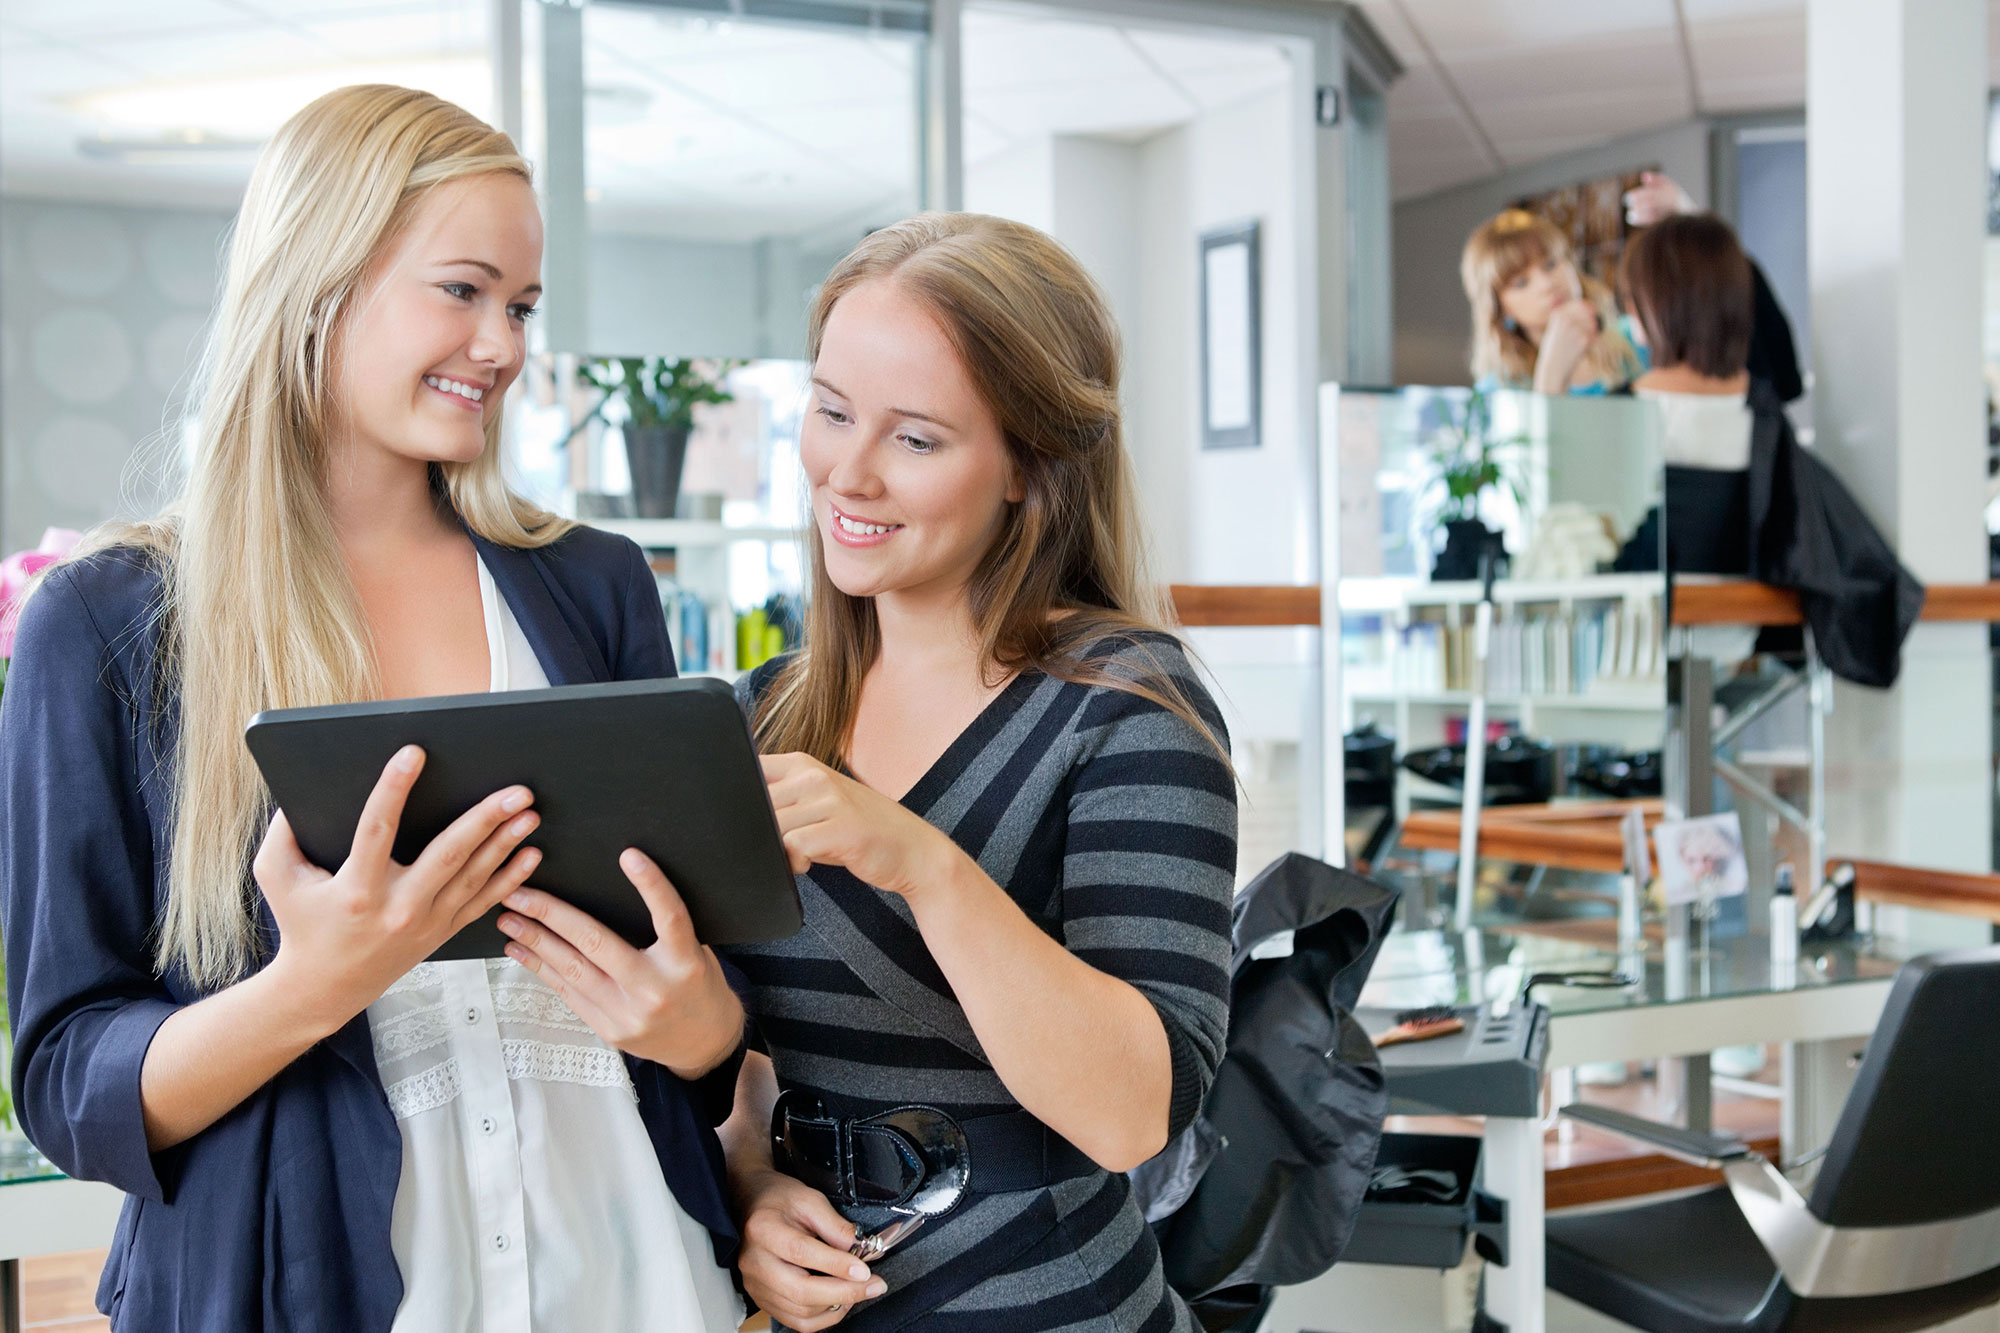 retail solutions that improve the speed and security of payments break from the checkout line